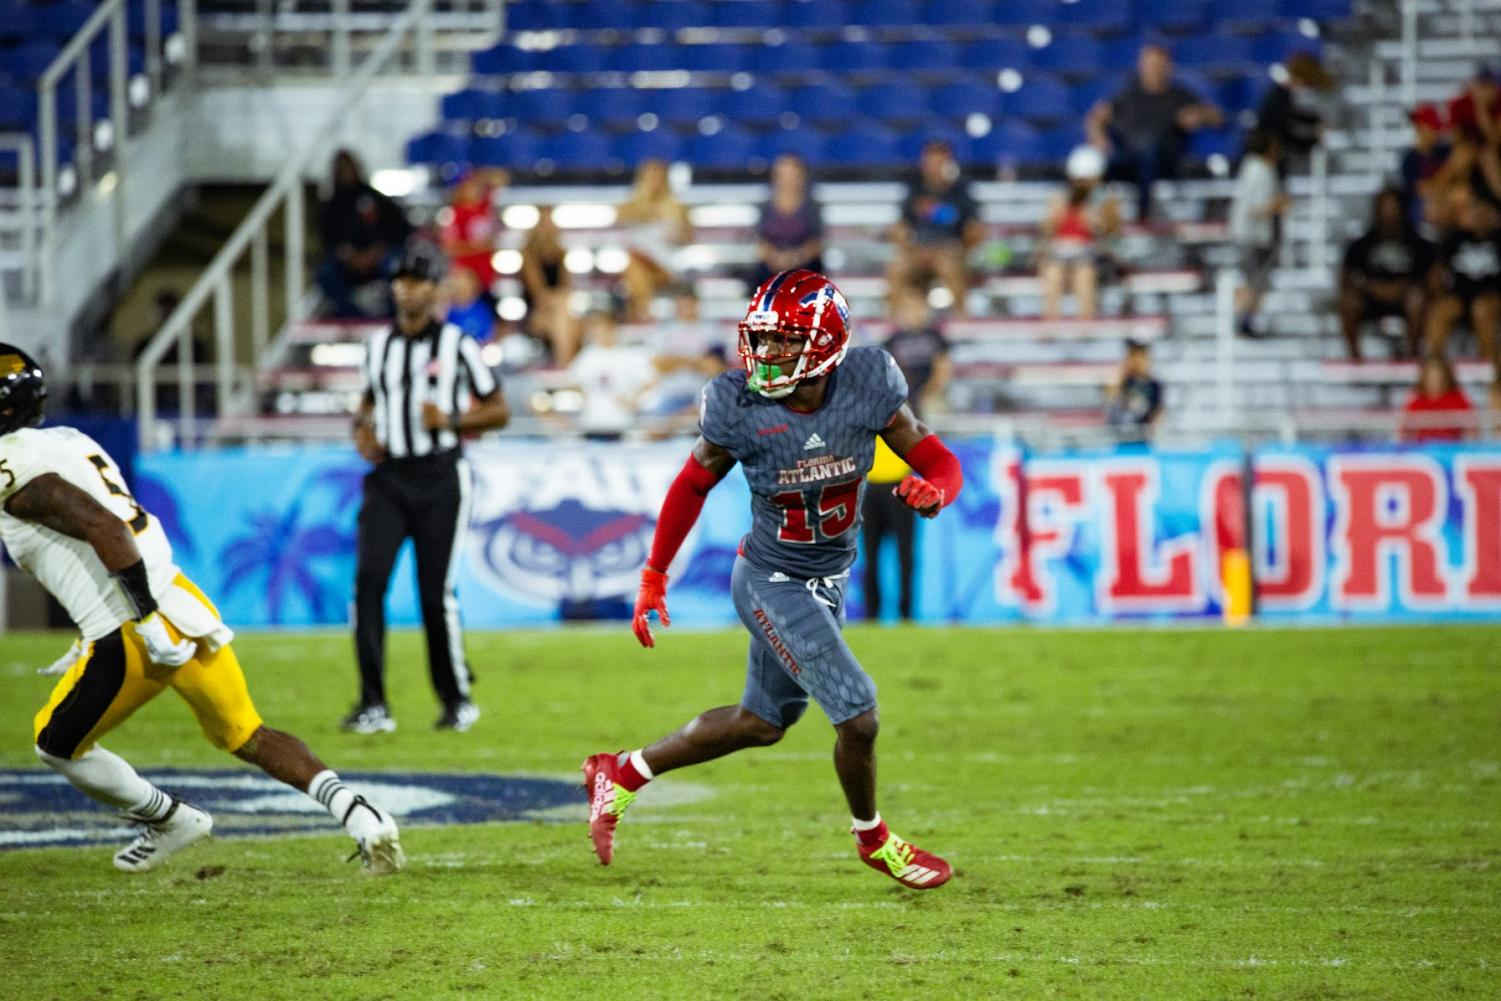 The defense for the Owls has been a standout this season, especially cornerback Meiko Dotson who recorded two interceptions in the win against Southern Mississippi. It brings his total to eight which is the most interceptions in a single season in program history. Photo by: Alex Liscio.